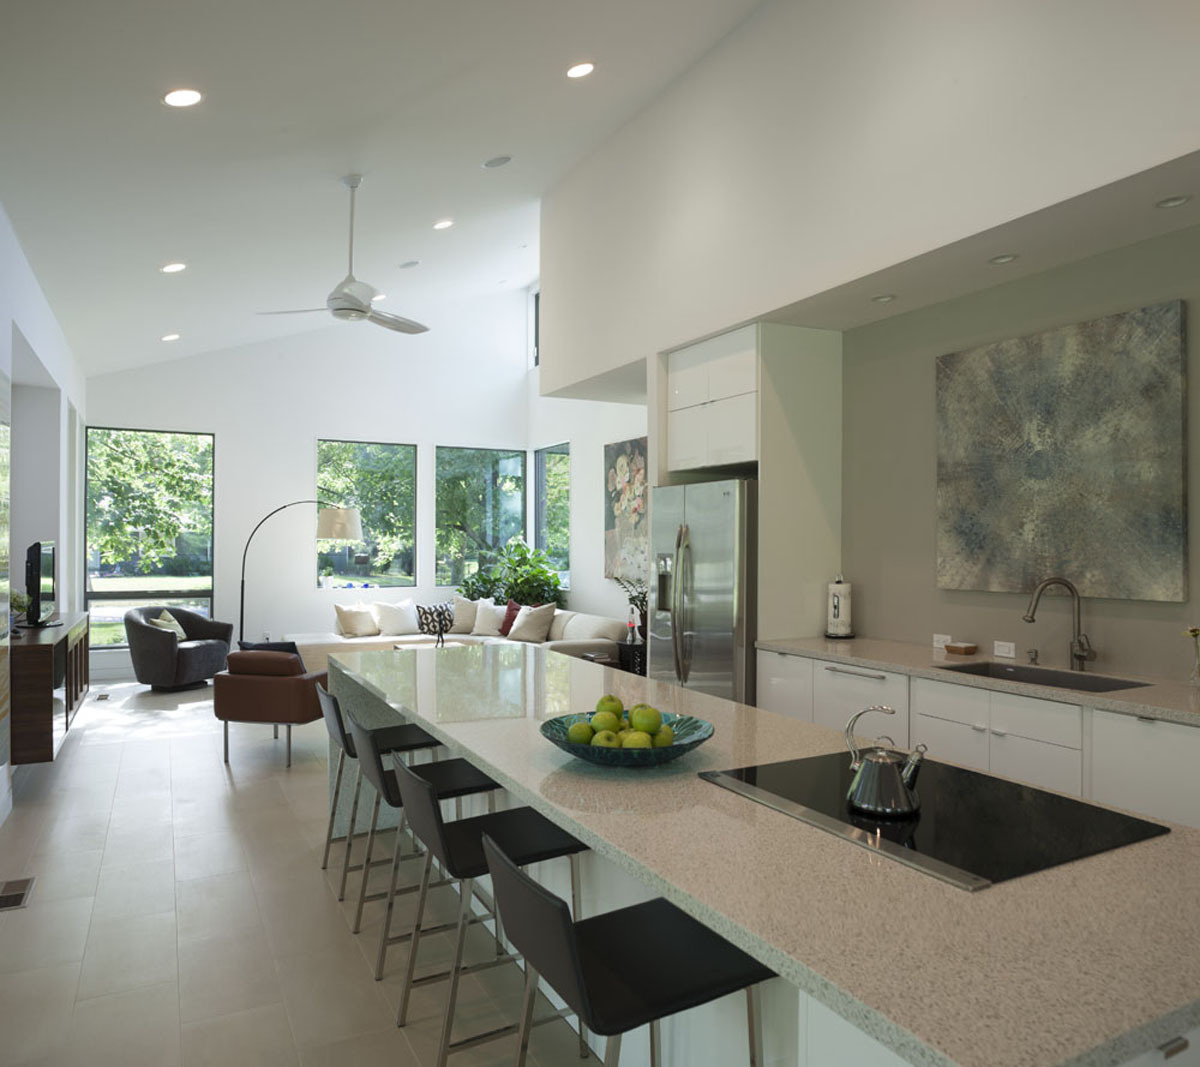 kitchen transitions into living space